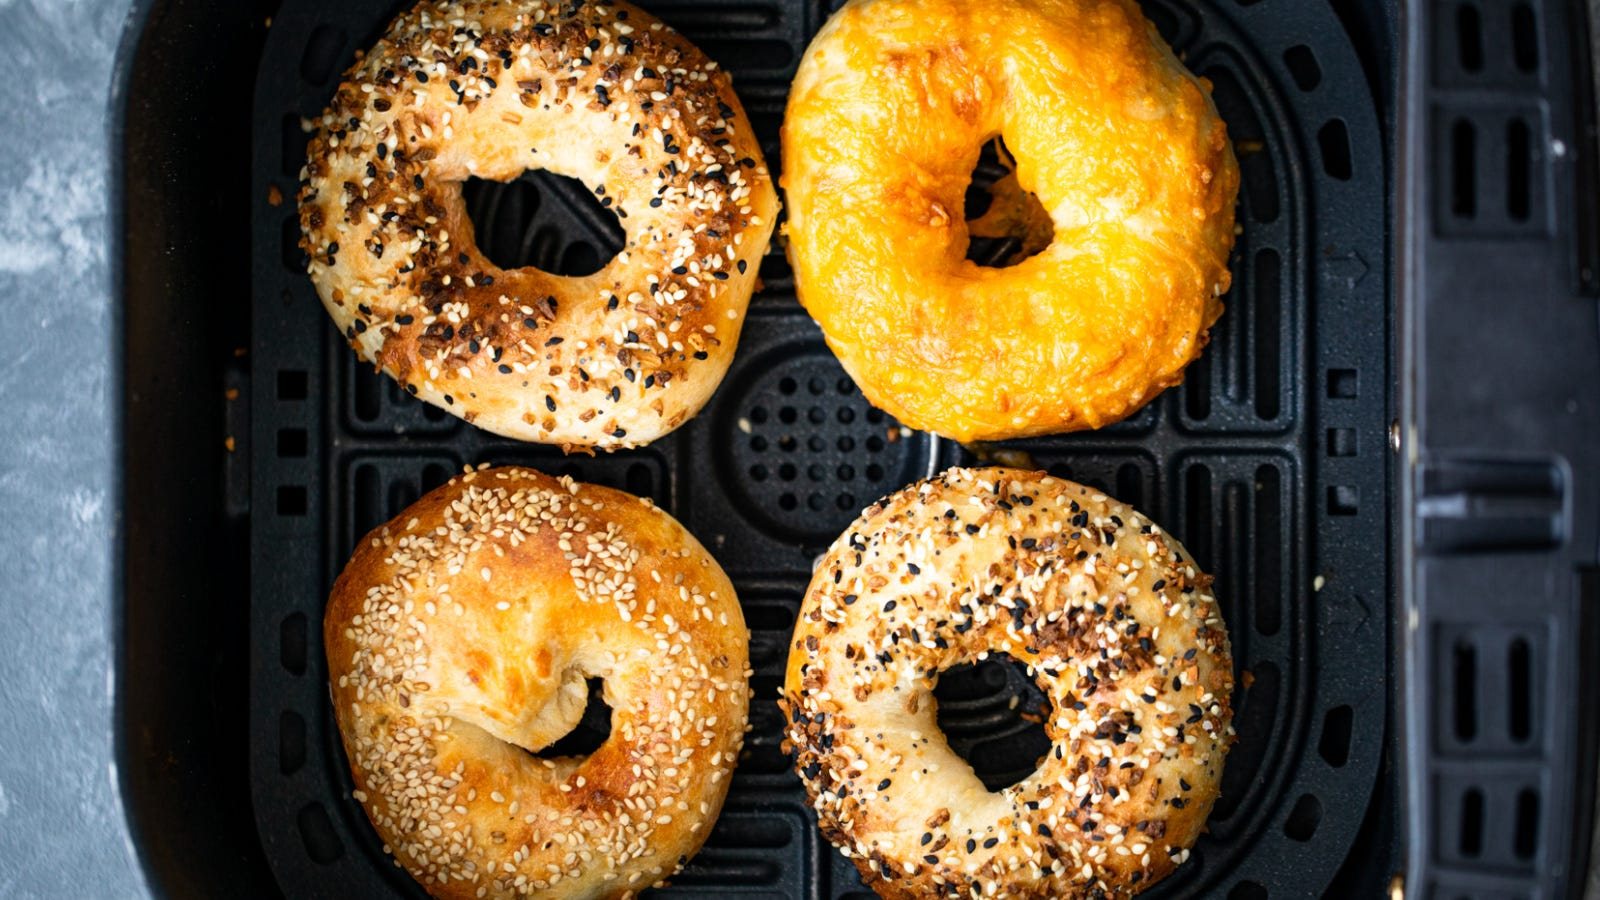 A large capacity air fryer compartment filled with four separate homemade bagels, each topped with different seasoning toppings.